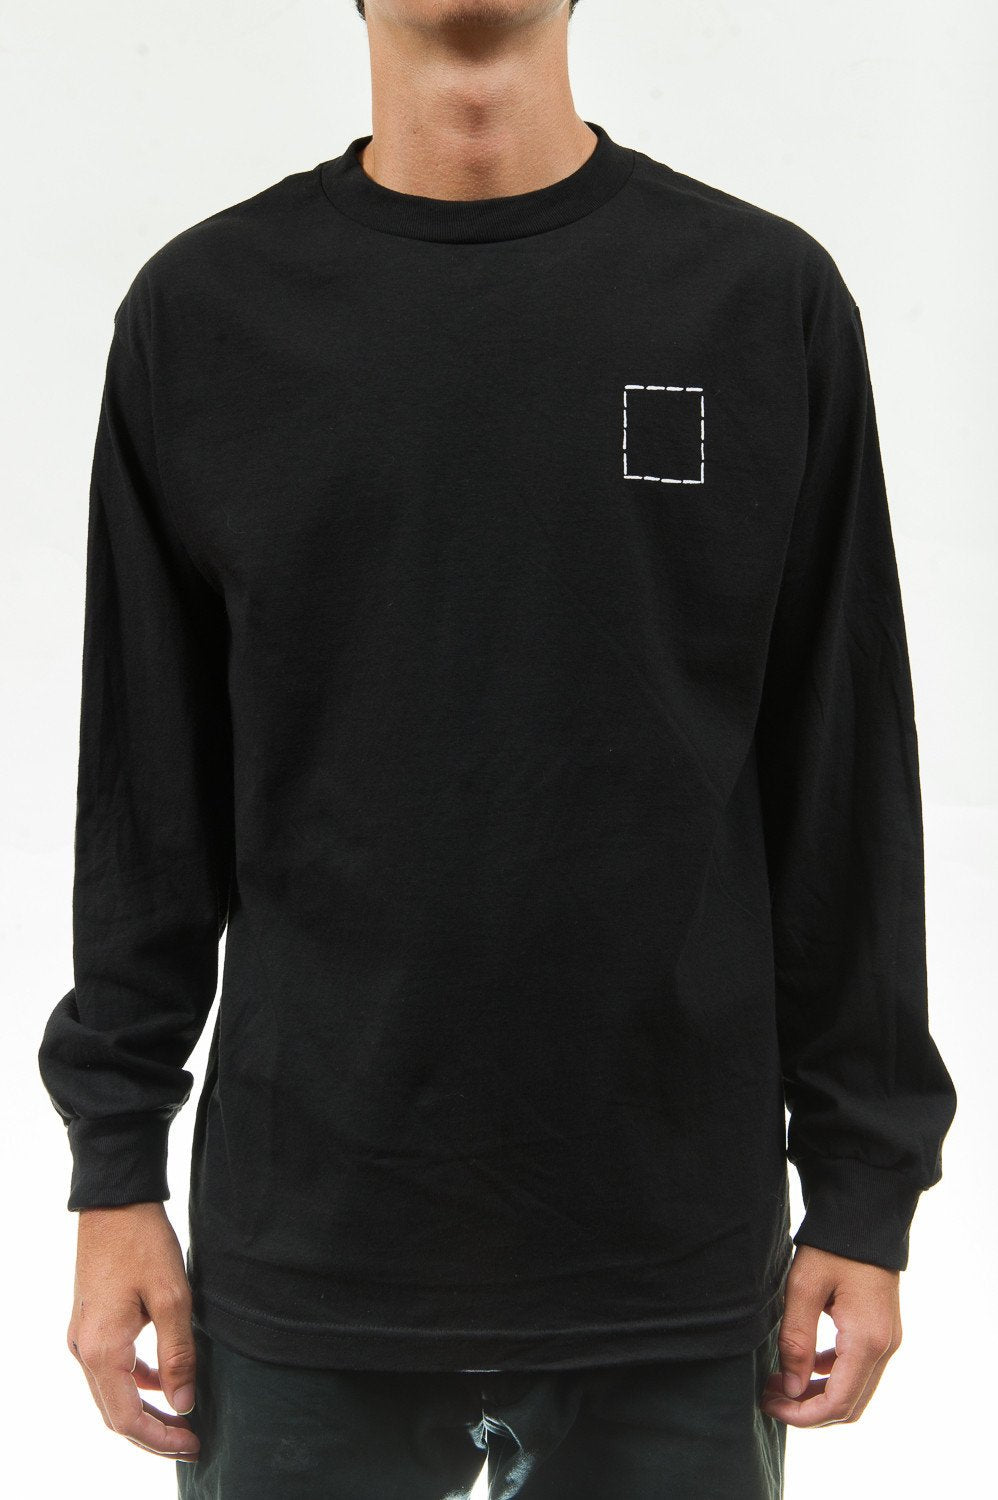 WKND Borderline Long Sleeve // BLACK-The Collateral